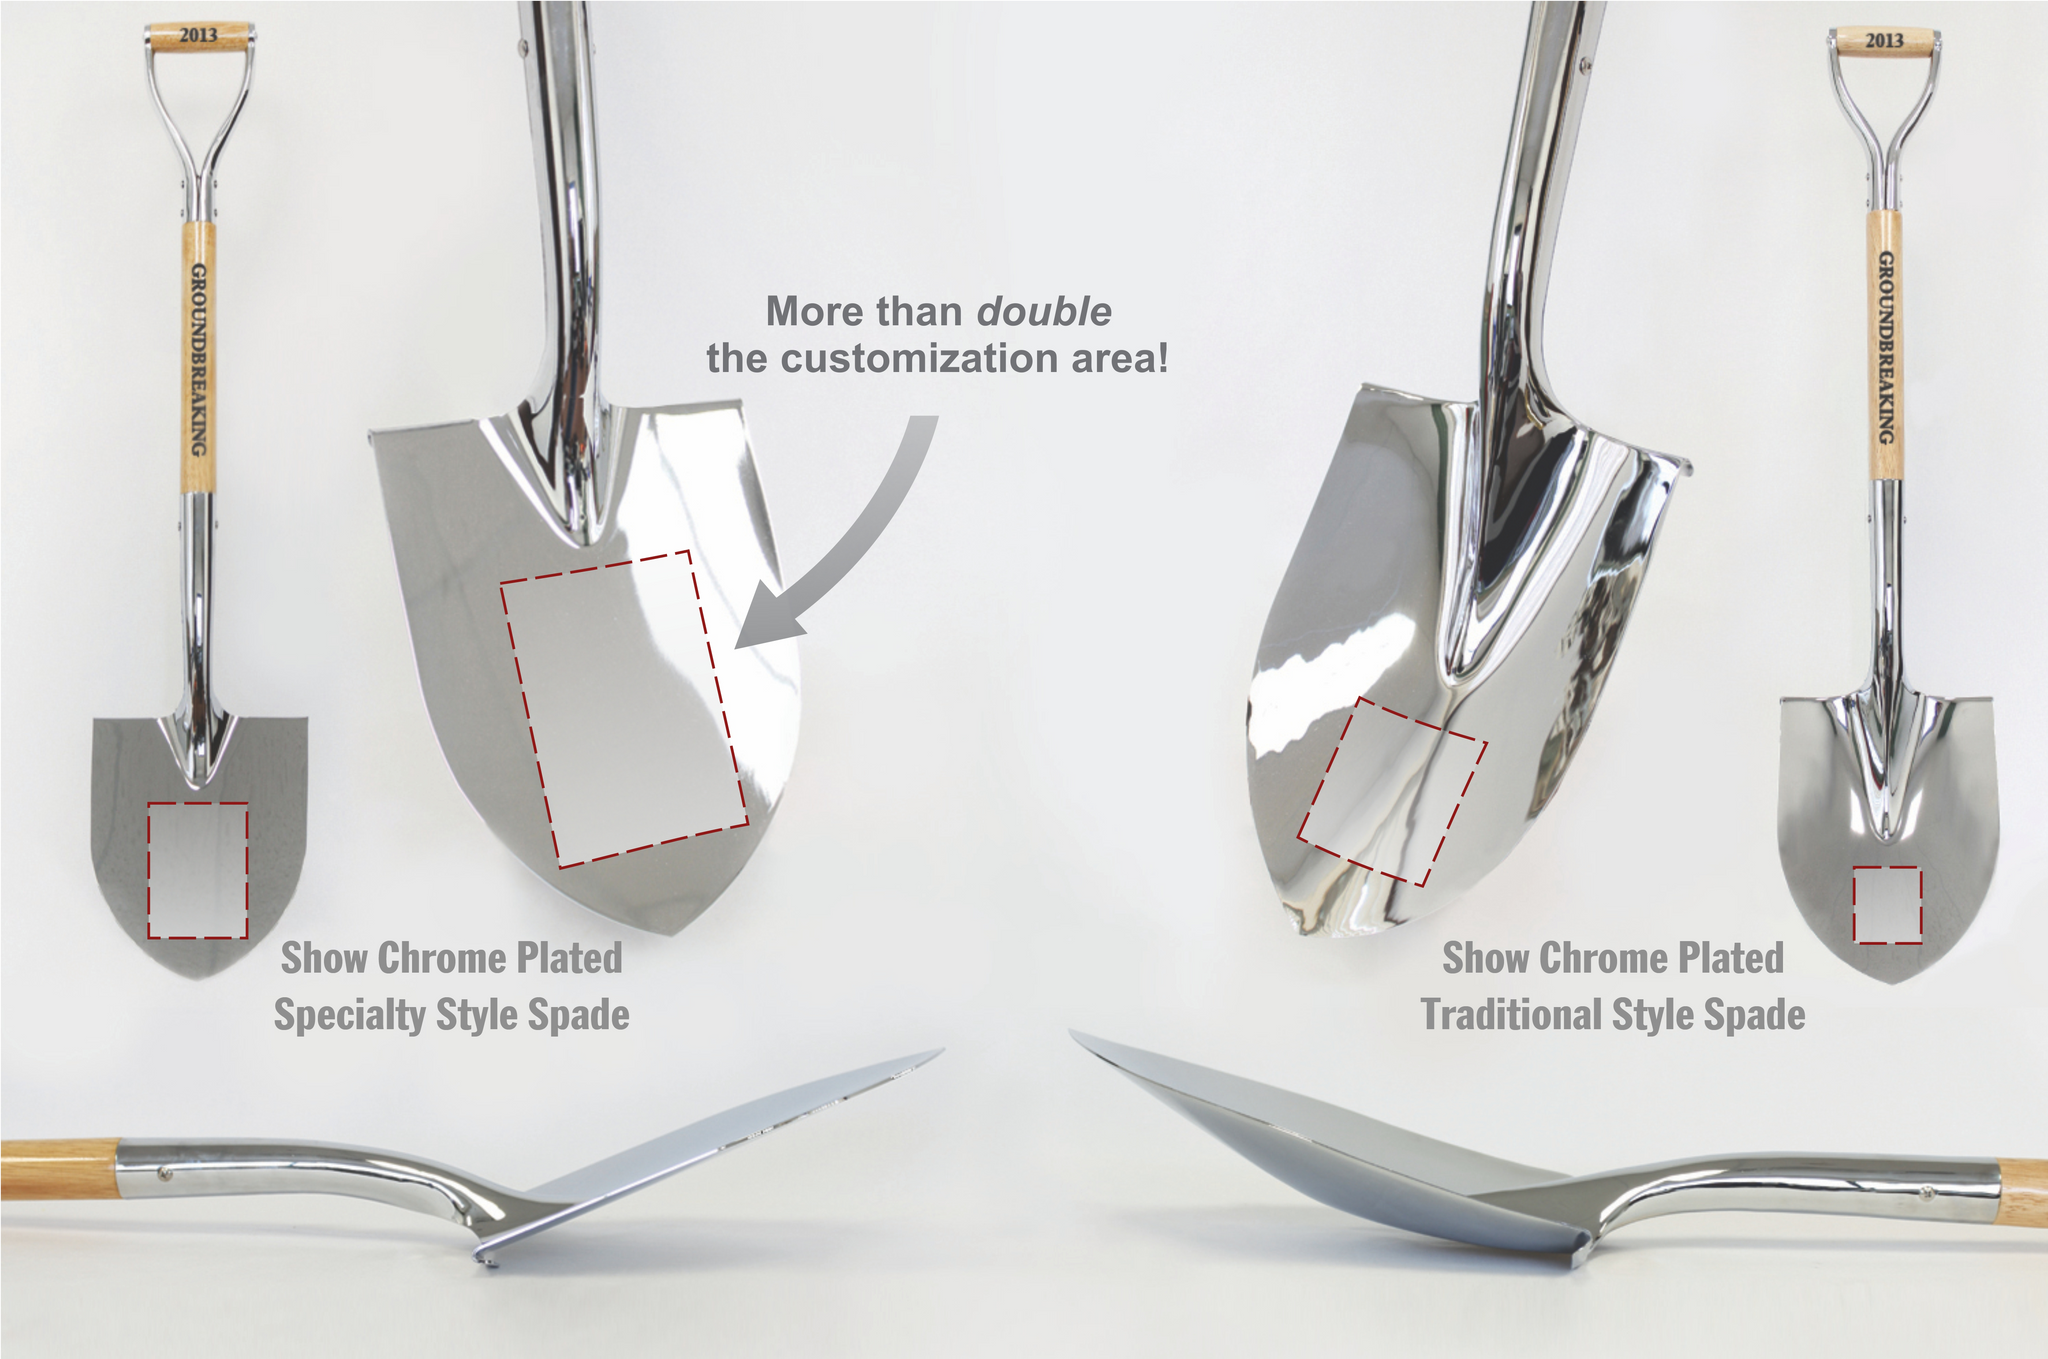 Traditional vs. Specialty Chrome Shovels